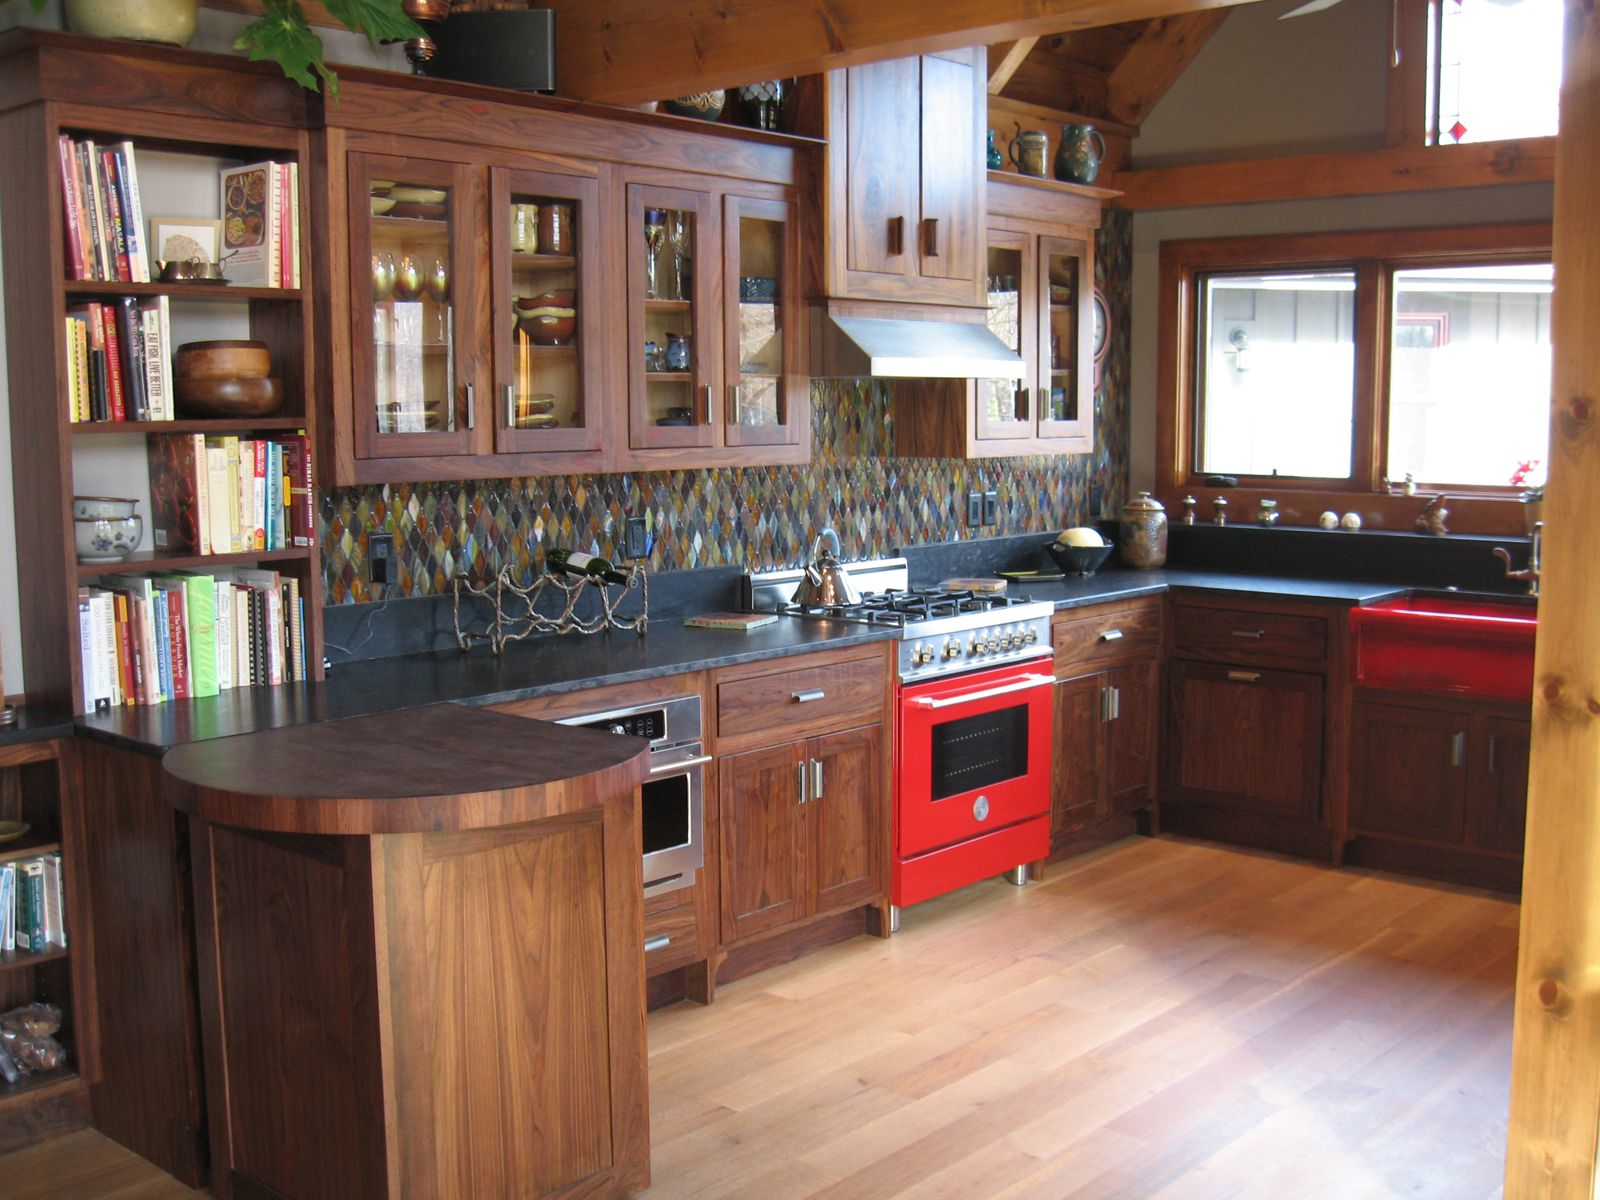 Custom Walnut Kitchen Cabinets | Kitchen design, Kitchen ...